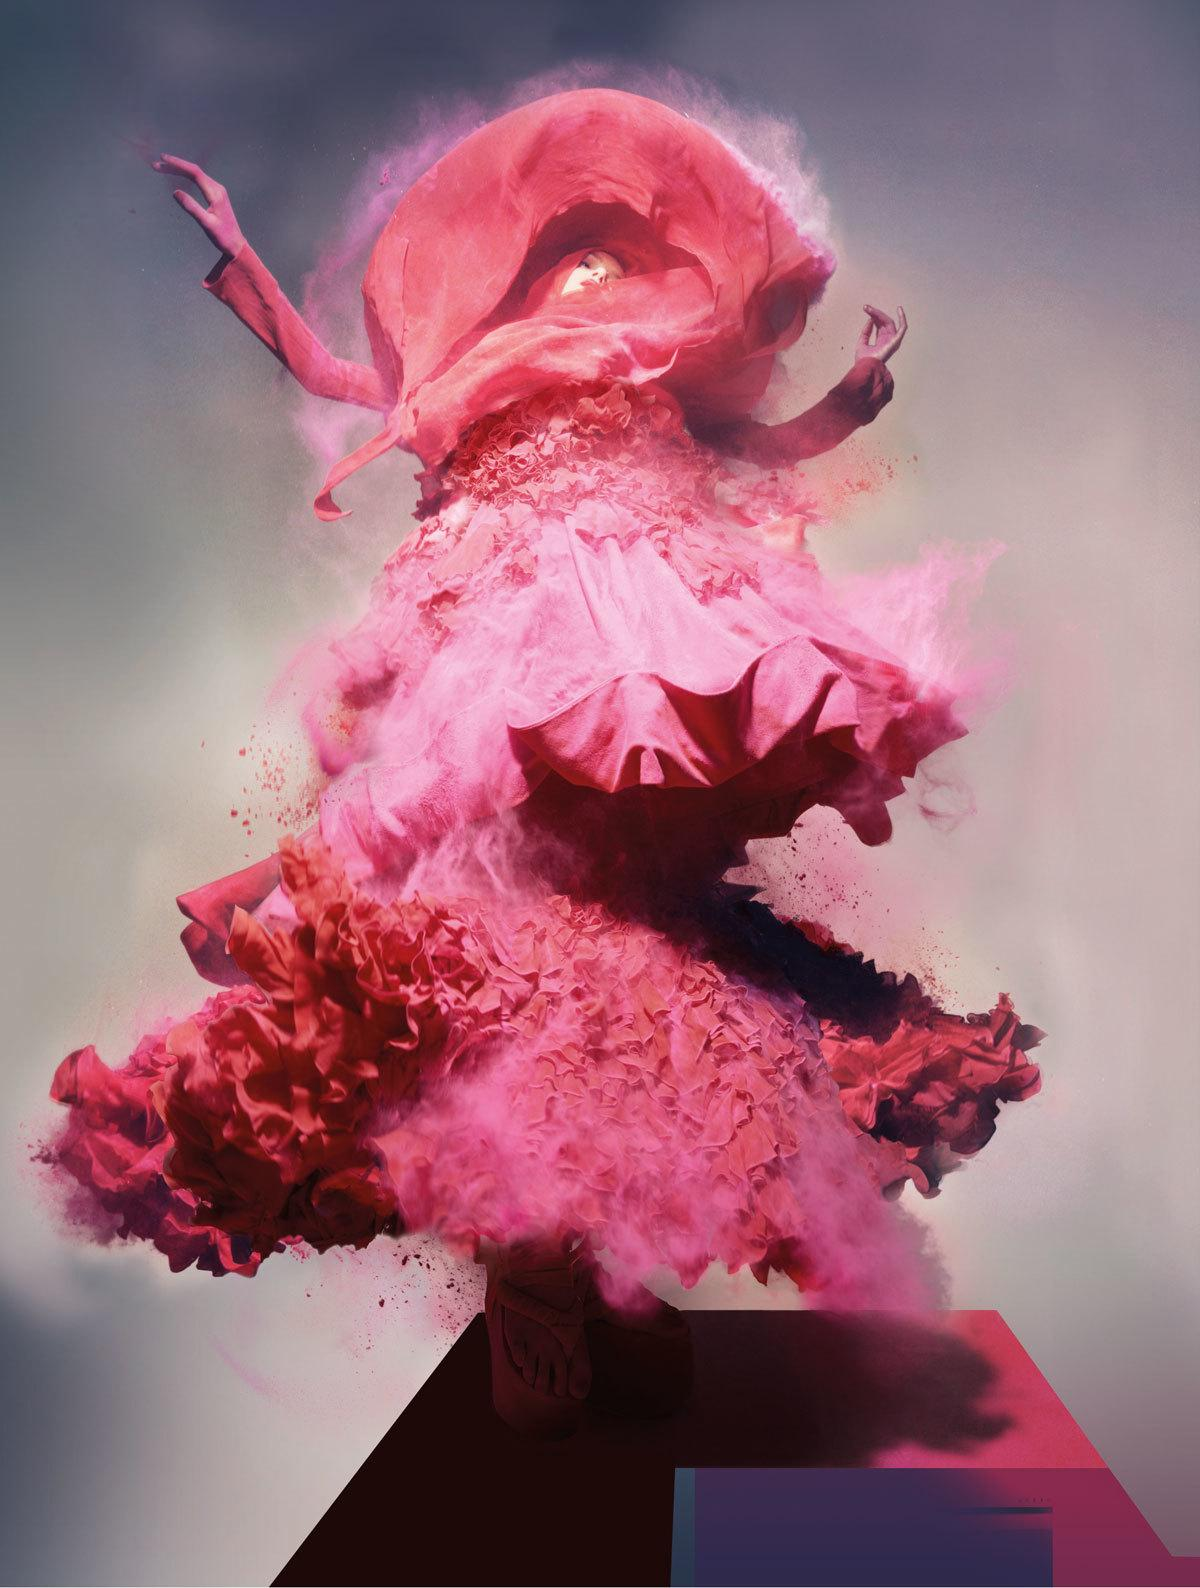 The Hospital Rooms - A collective of world-renowned contemporary artists commissioning their work via a new charity. Aiming to change patients mood and scenery in mental hospital wards, worldwide.Nick Knight, Lily